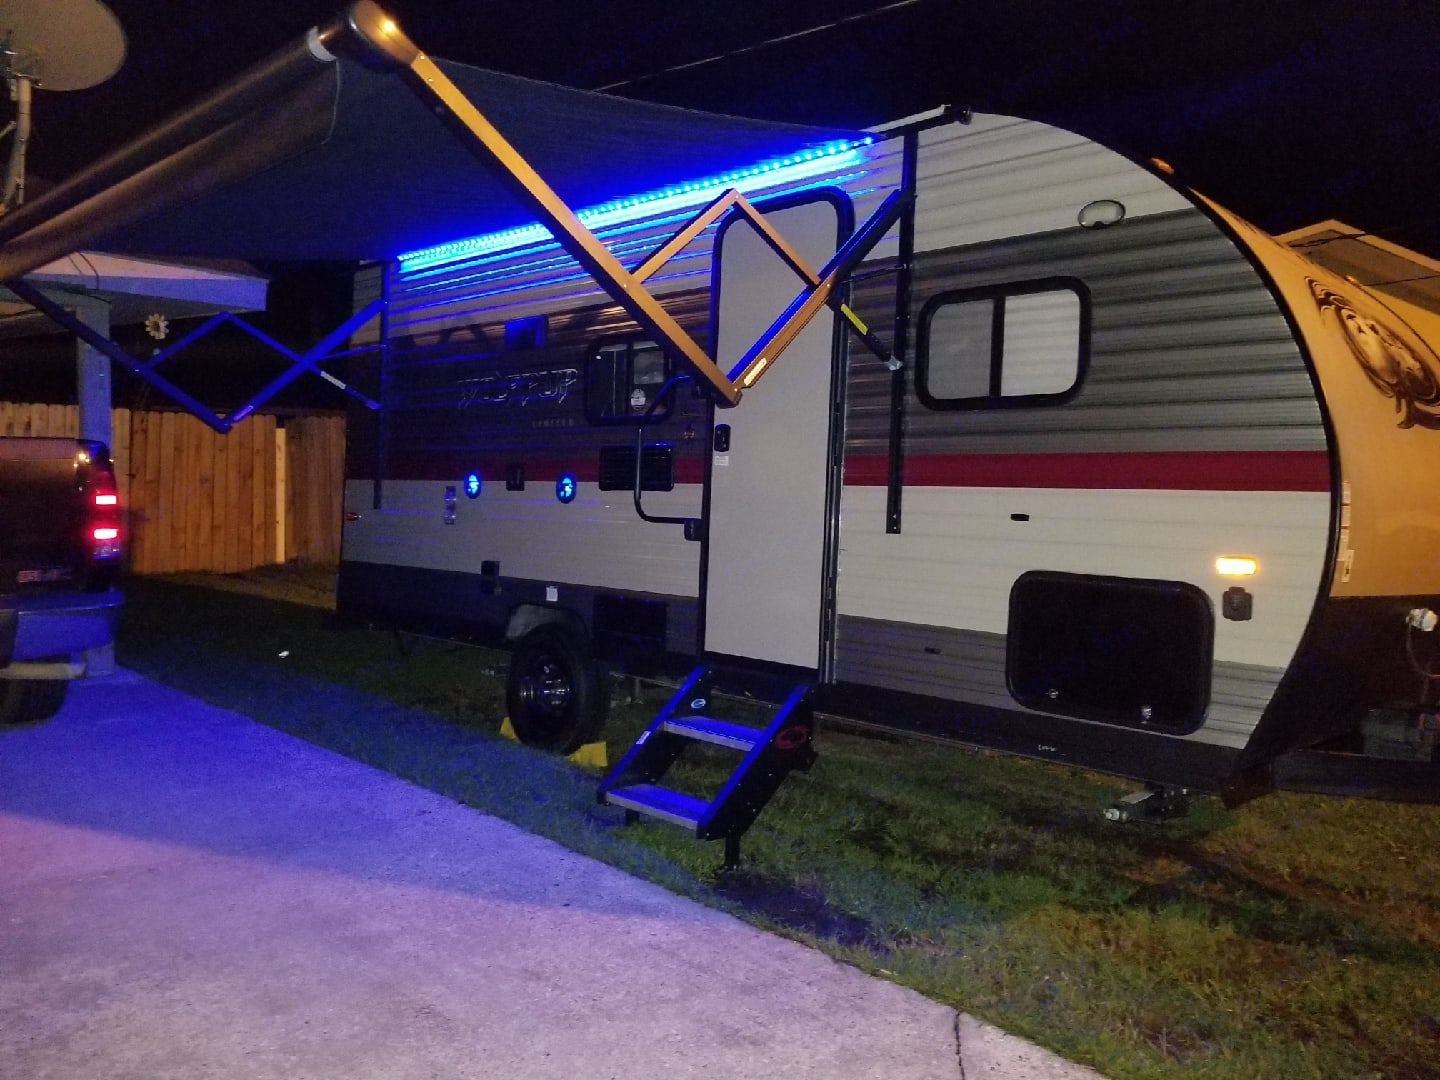 Blue LED lights, waterproof speakers, exterior TV mount and hook up.. Forest River Cherokee Wolf Pup 2018